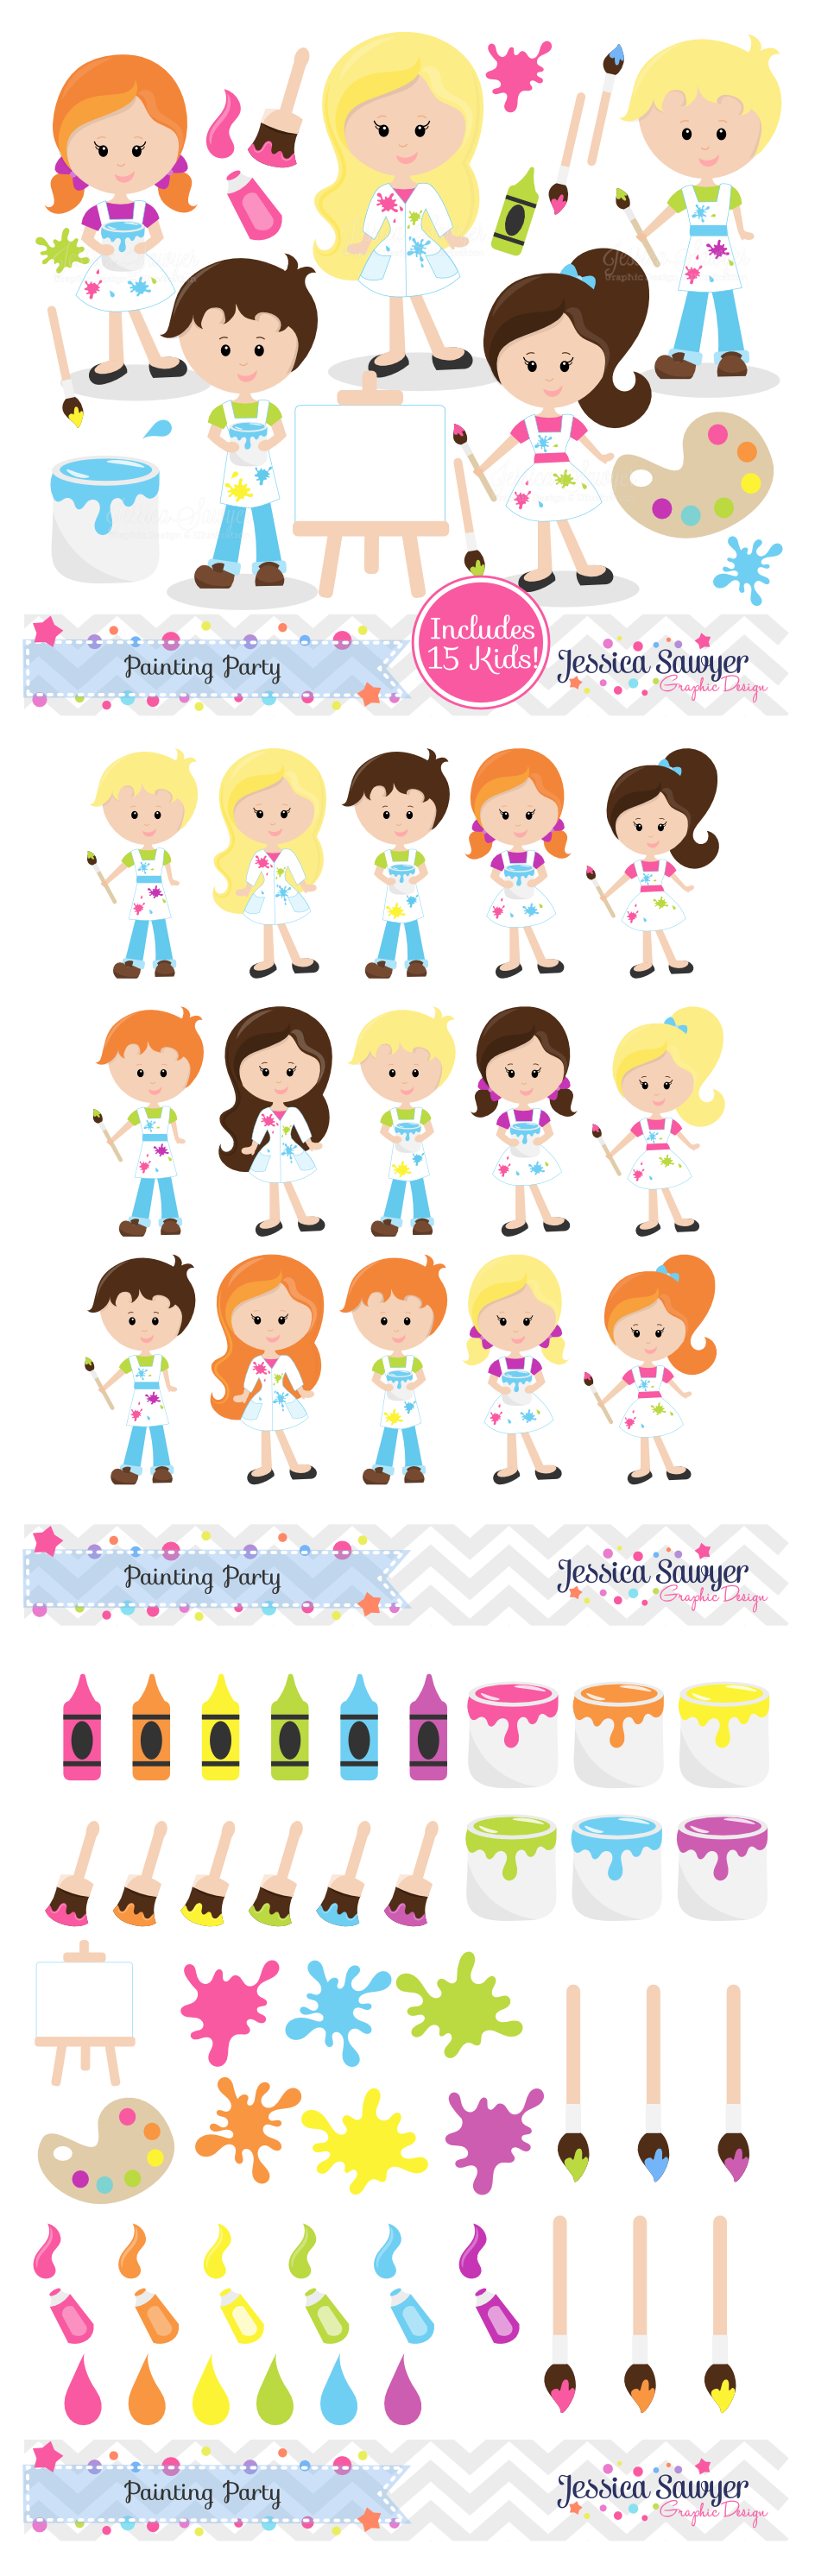 School party clipart image royalty free download Complete Art Party Clipart or Painting Clip art for personal and ... image royalty free download